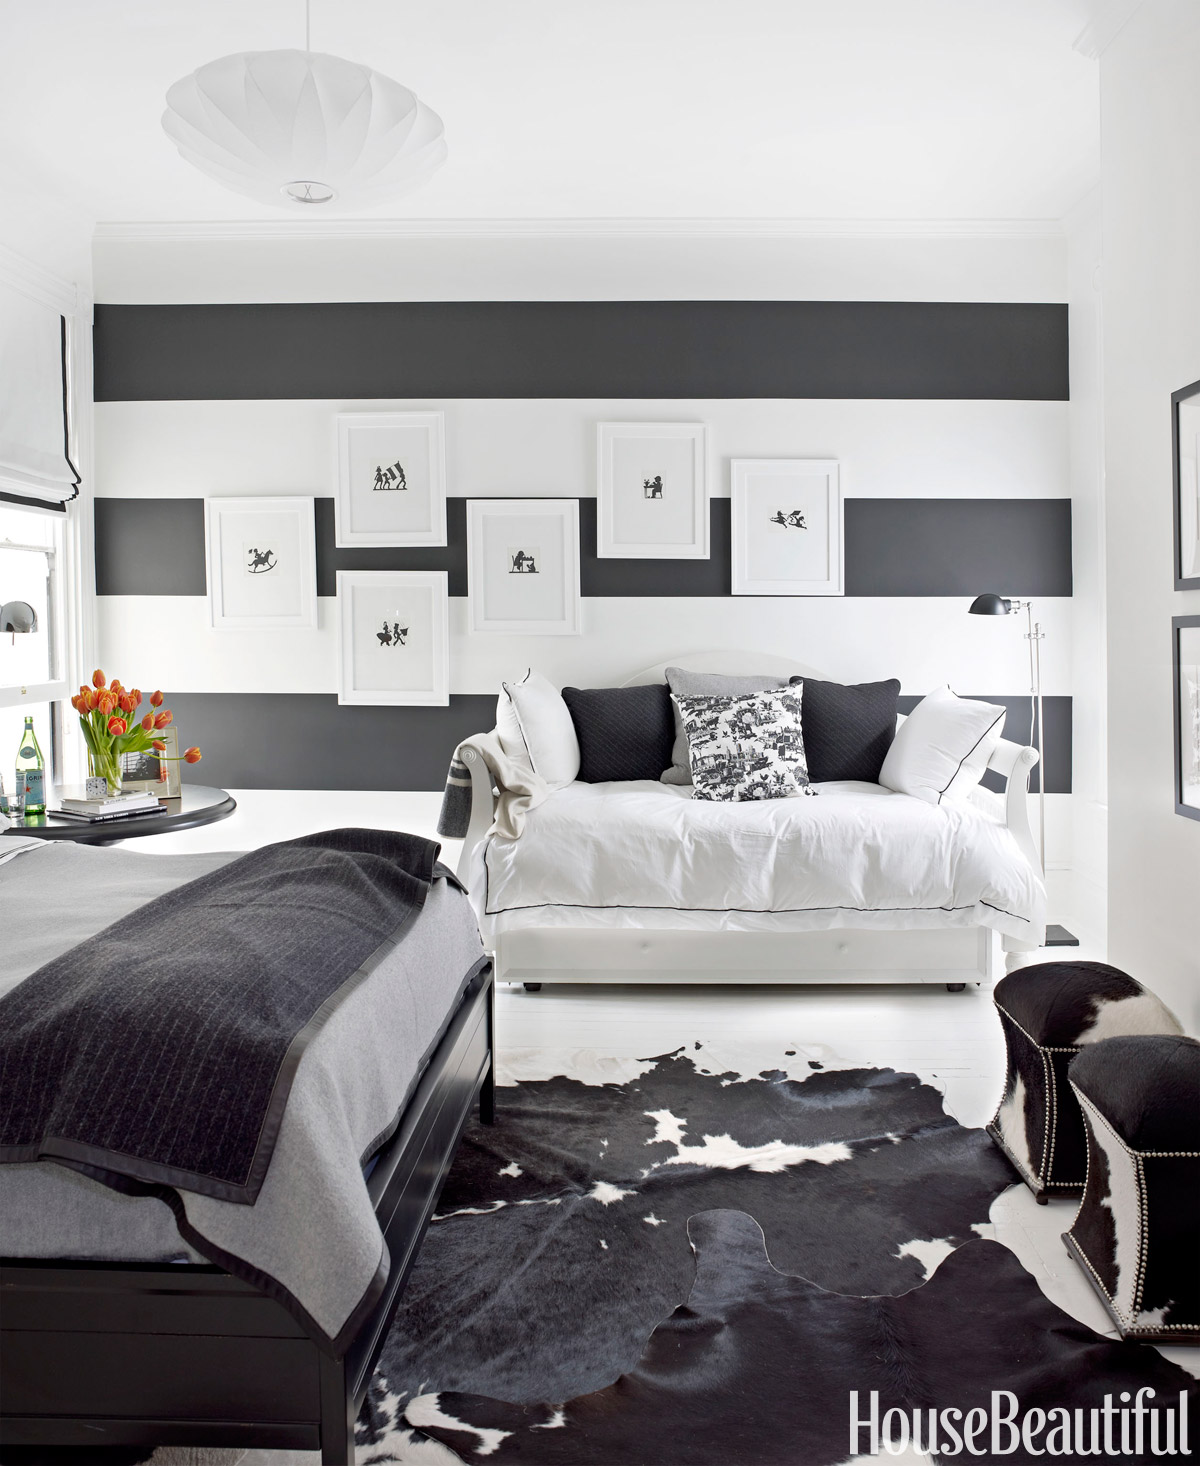 Black And White Decorating black and white designer rooms - black and white decorating ideas